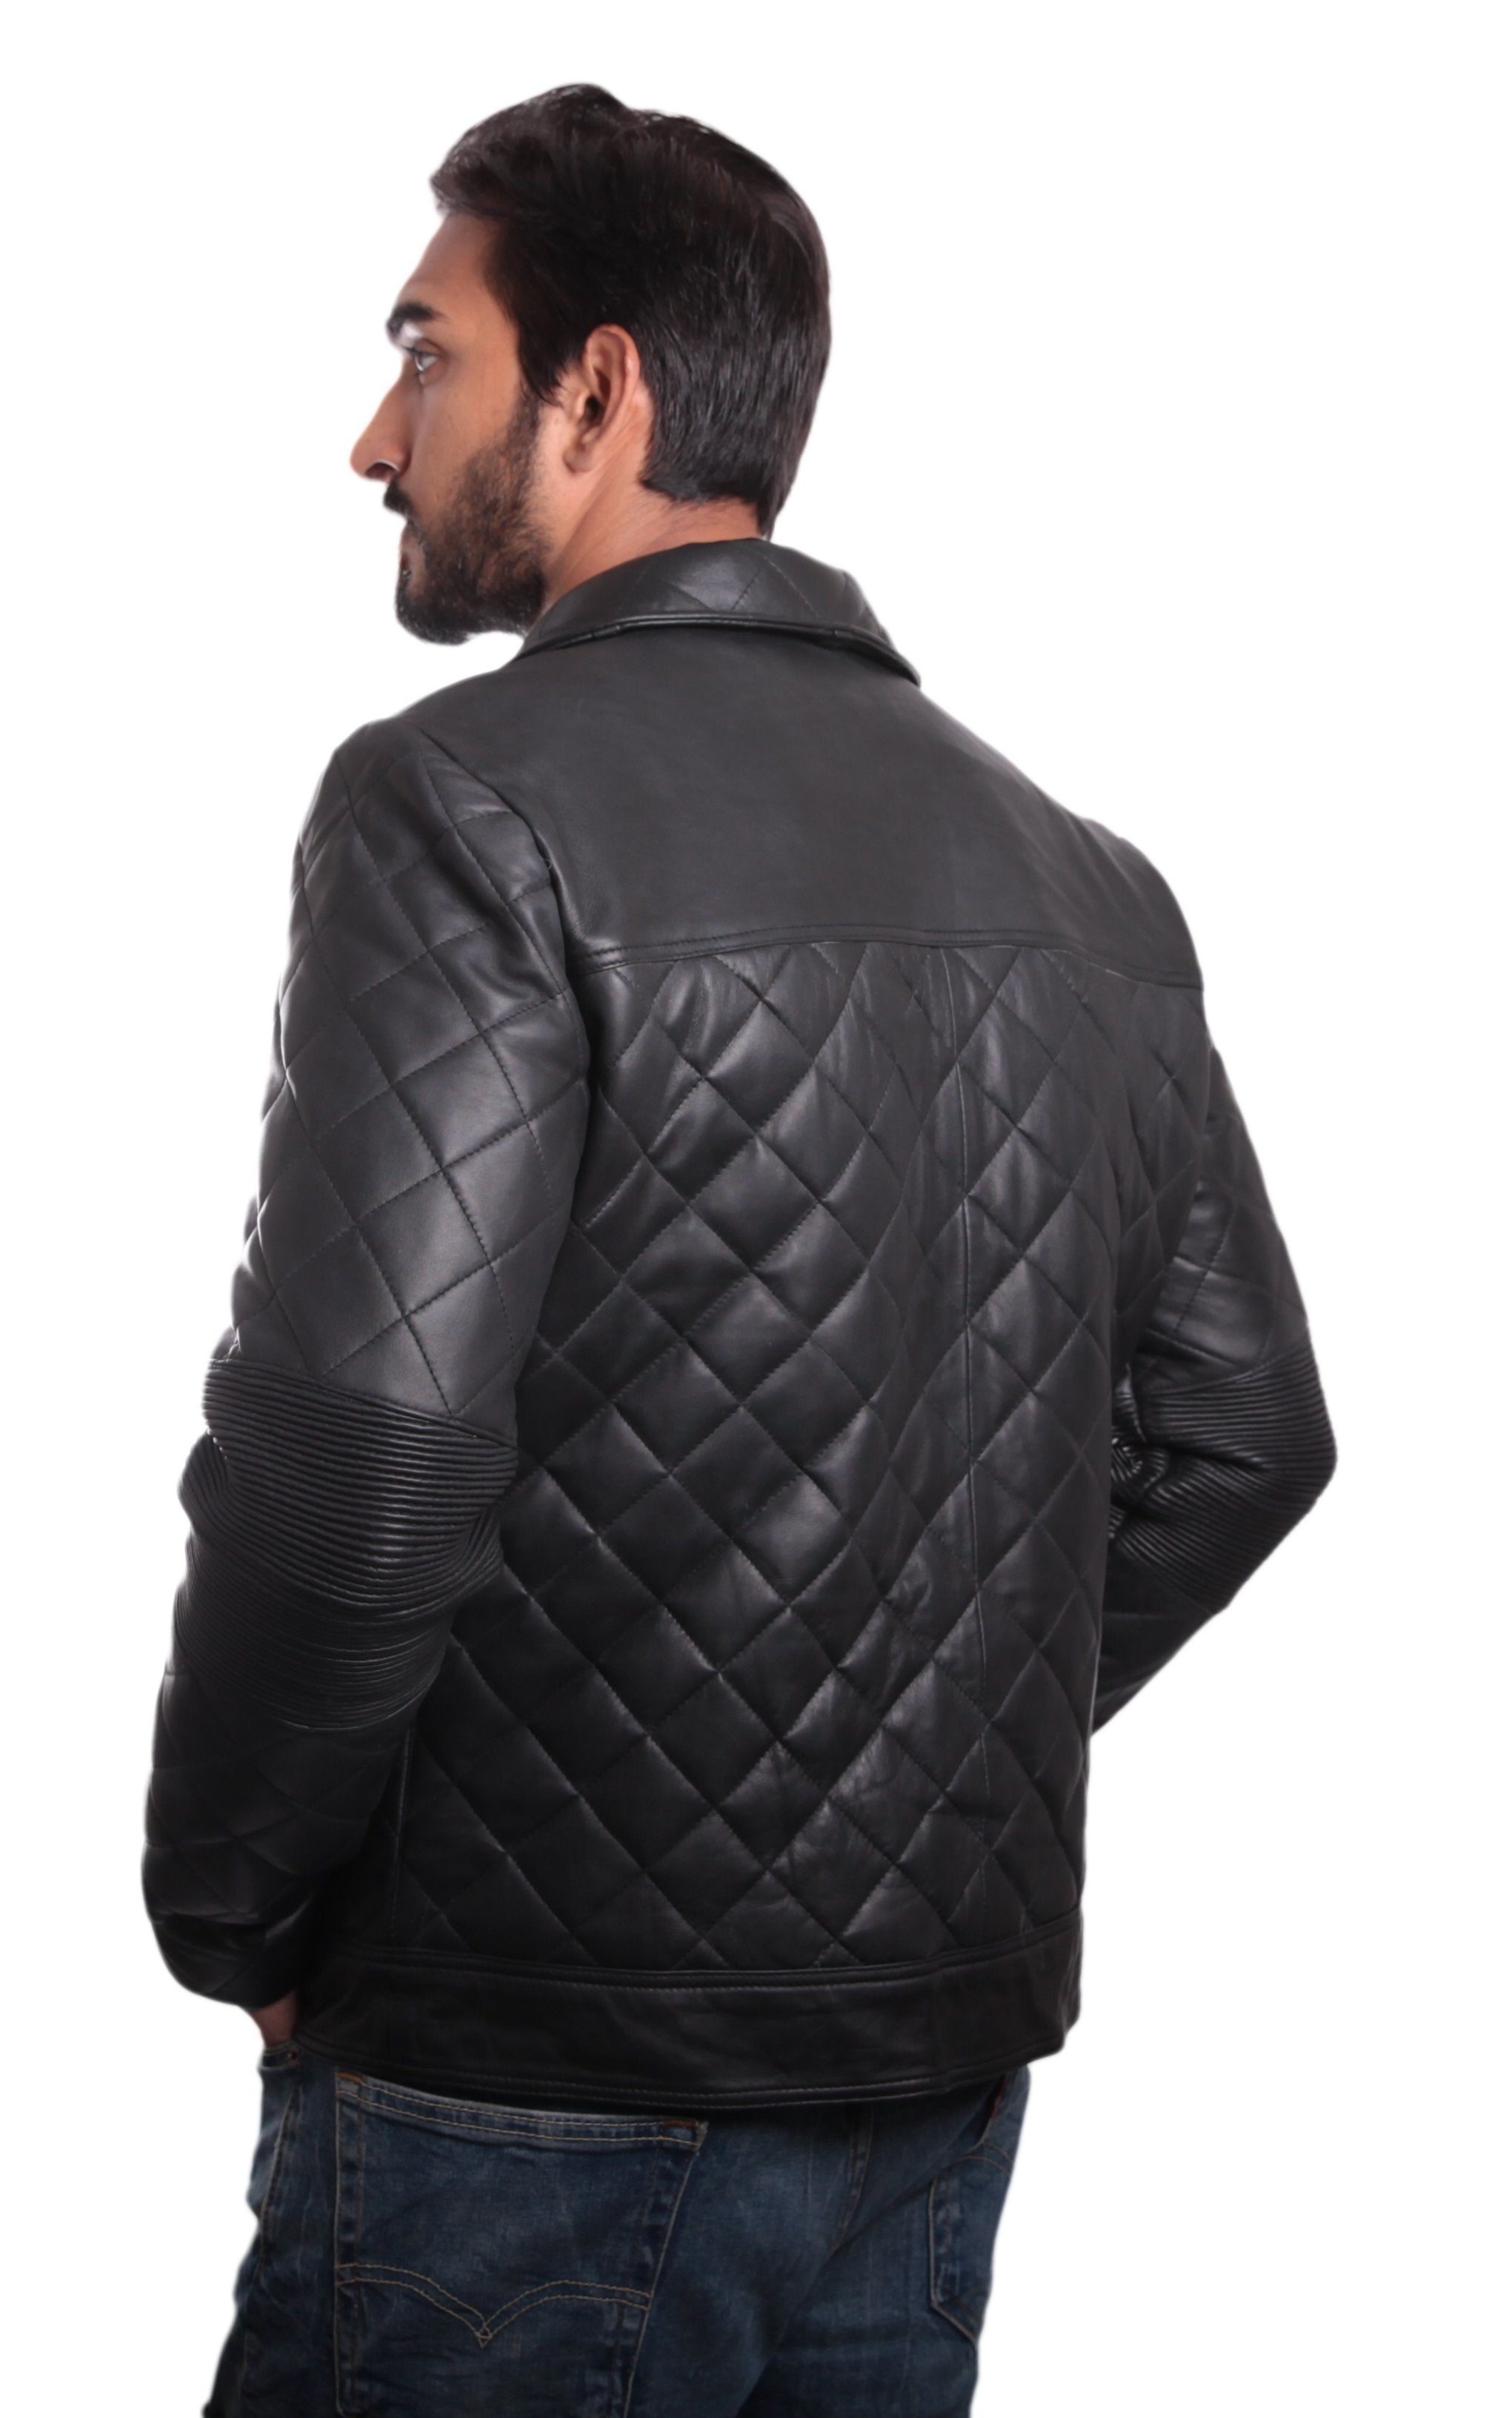 Leather Jacket - Mens Quilted High-End Jacket